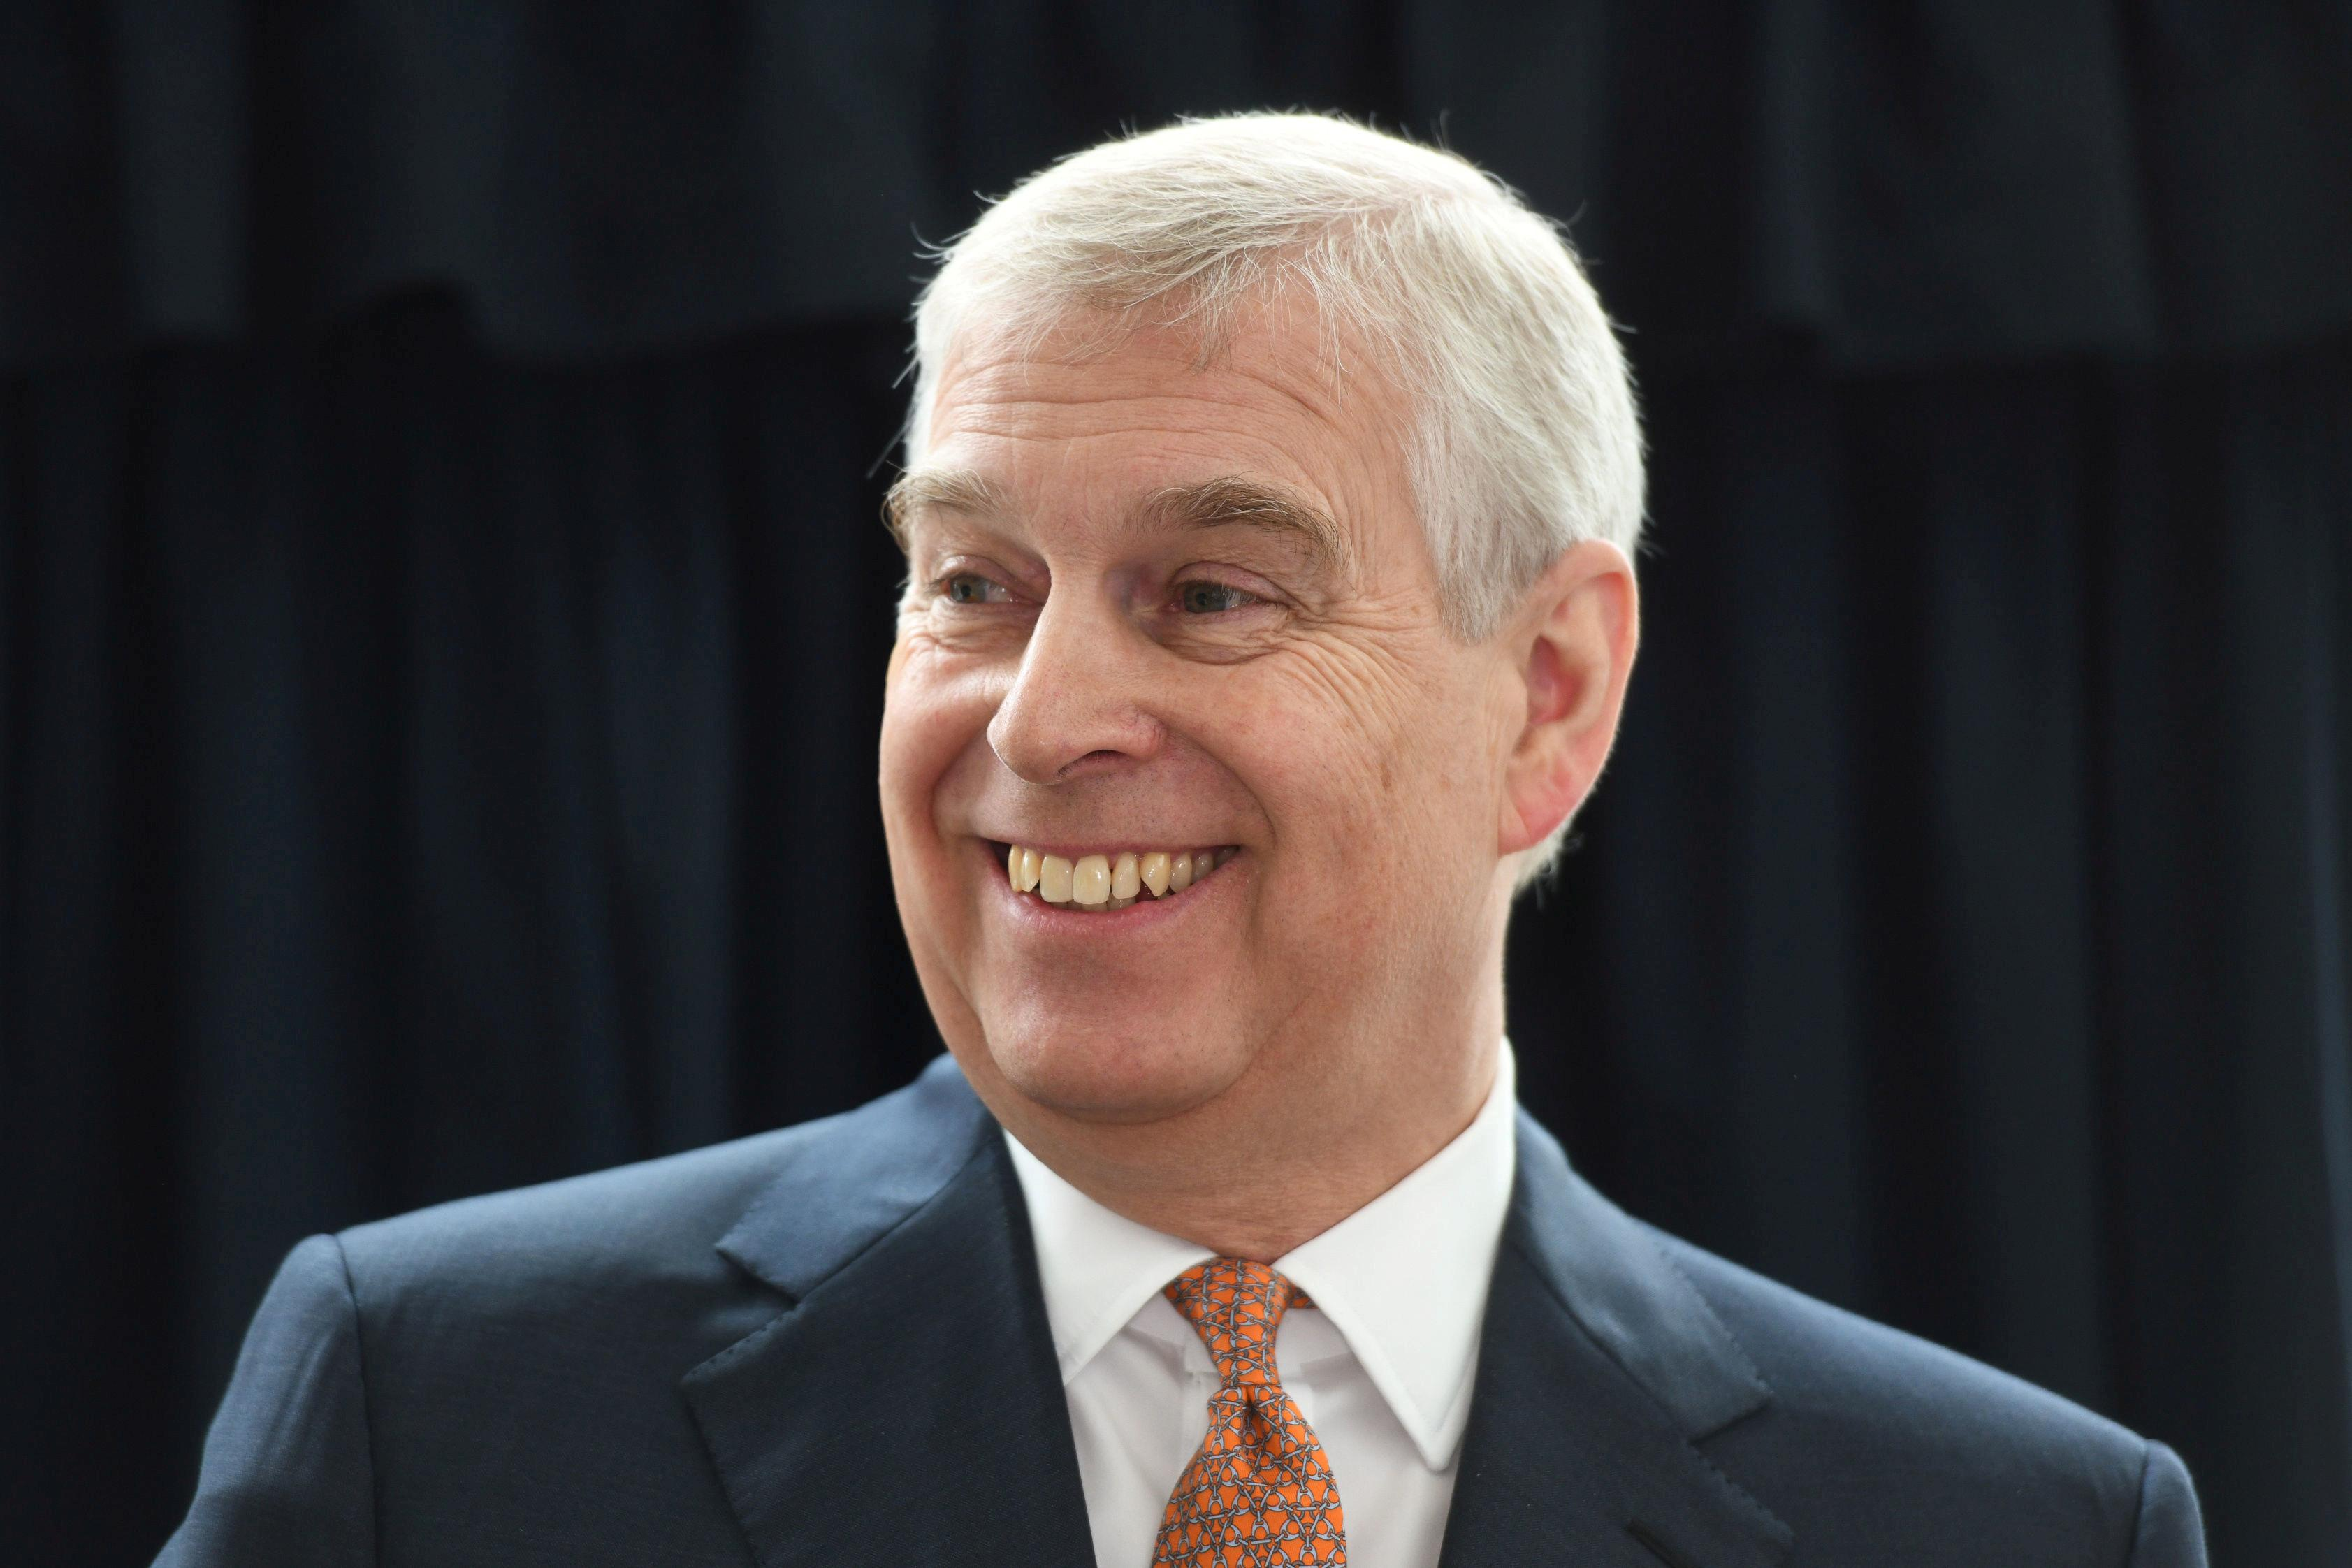 PM Johnson says Prince Andrew has done good for UK businesses overseas